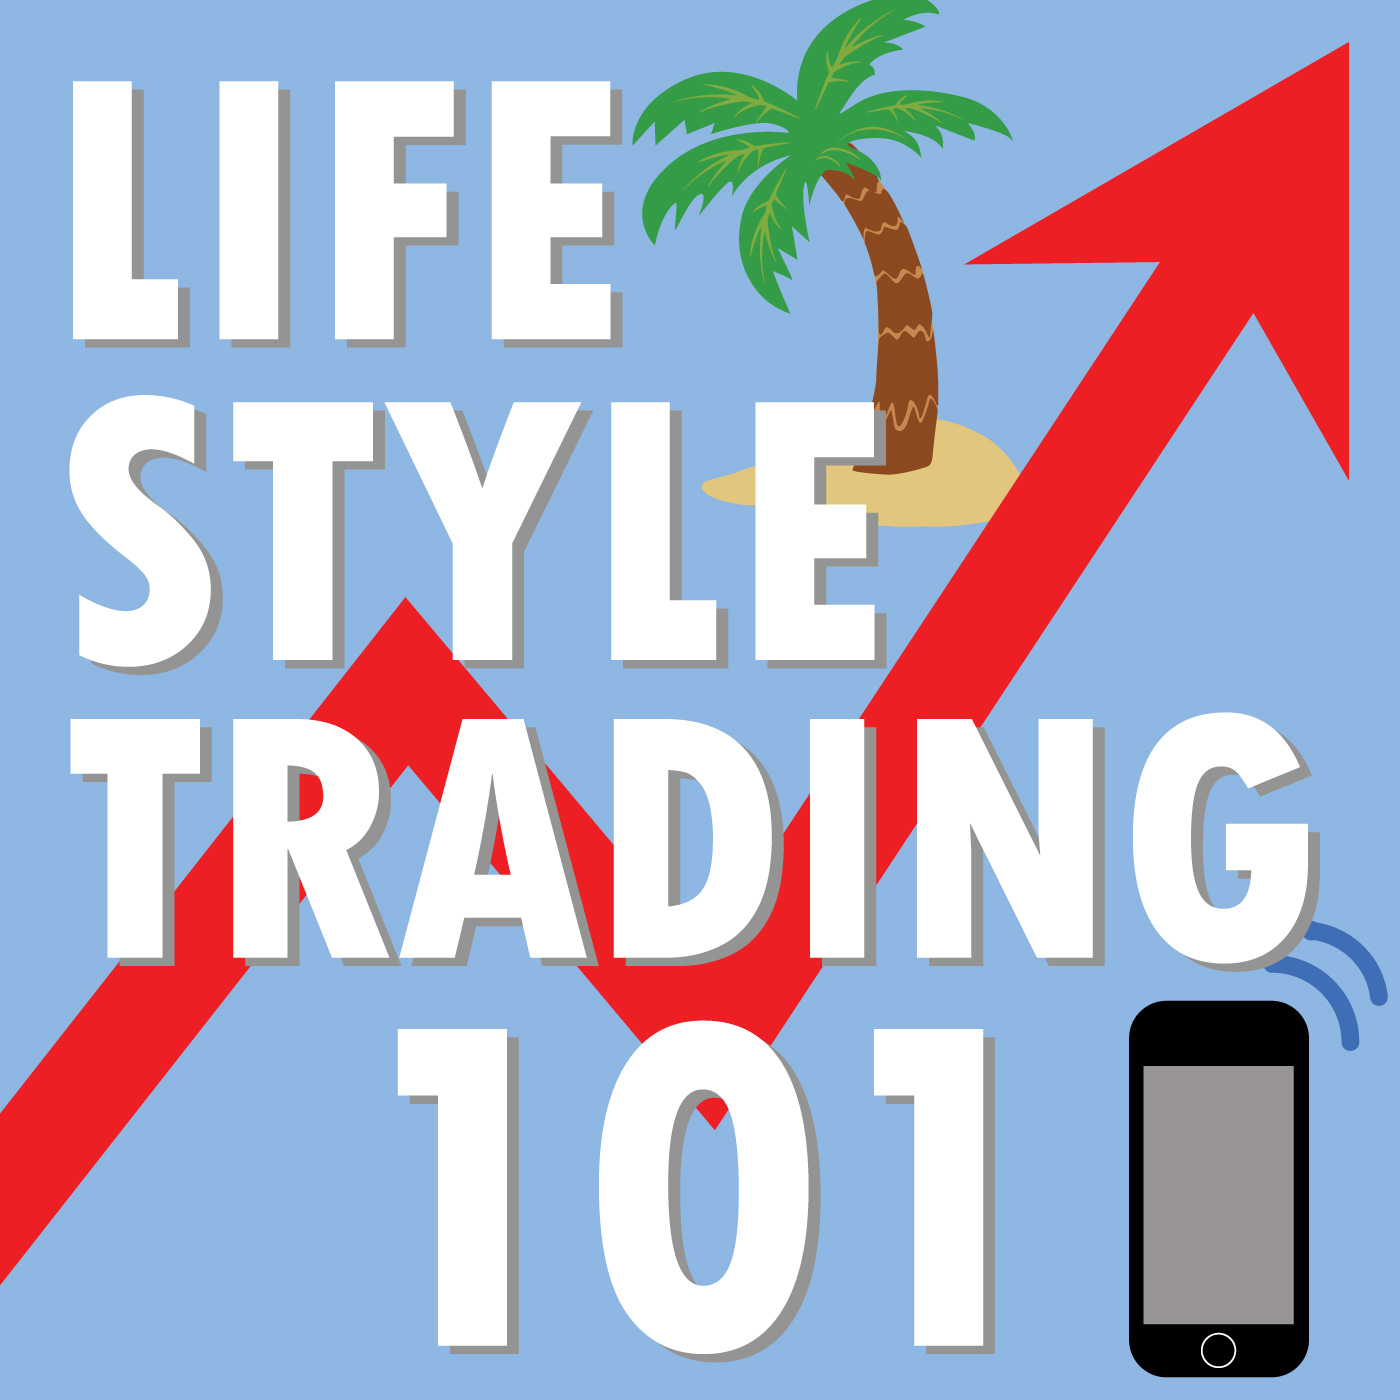 Lifestyle Trading 101 | Surfing the stock market week after week